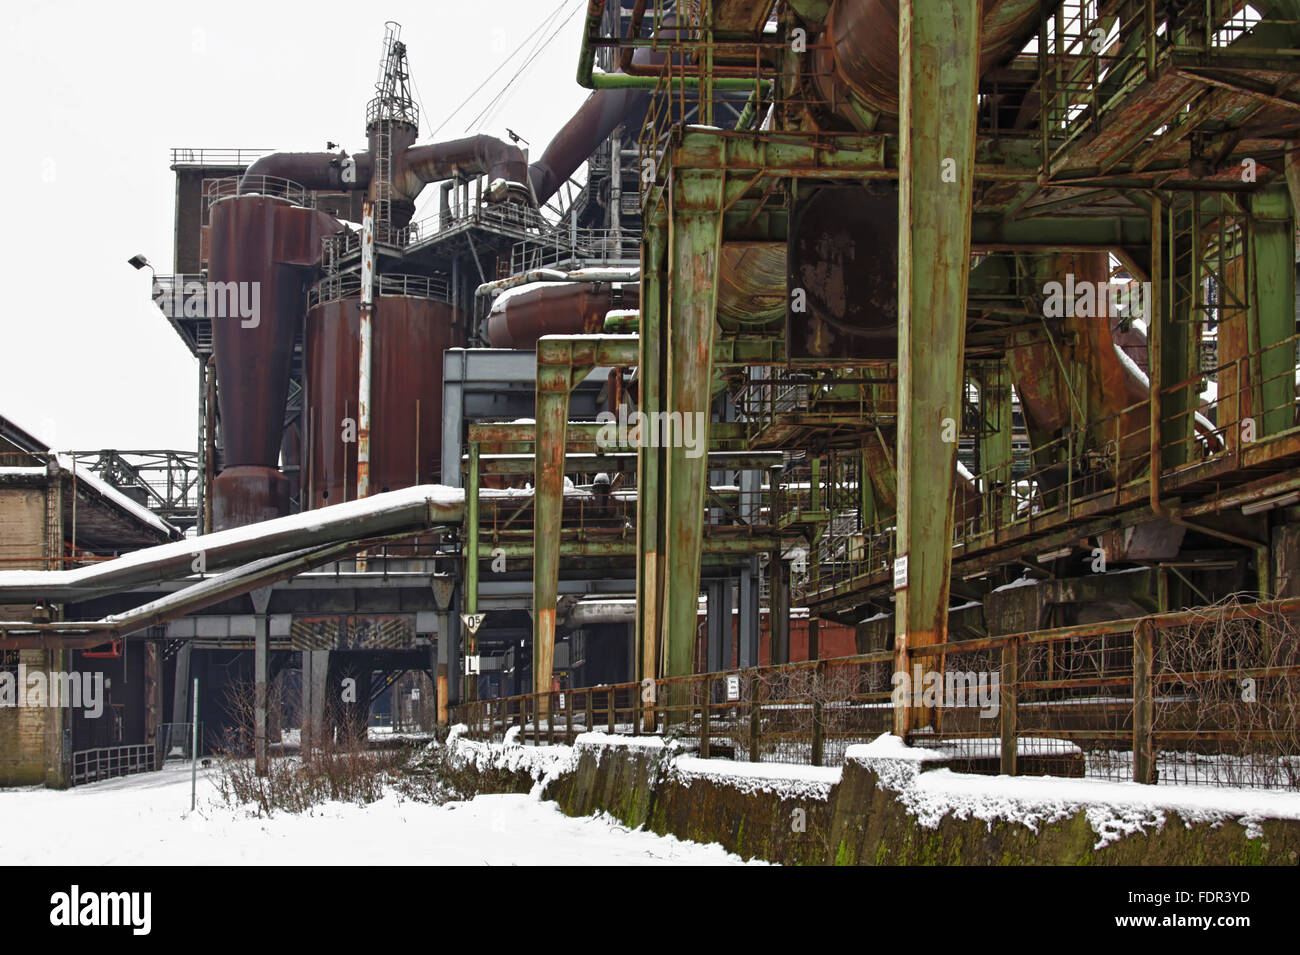 industry,steelworks - Stock Image